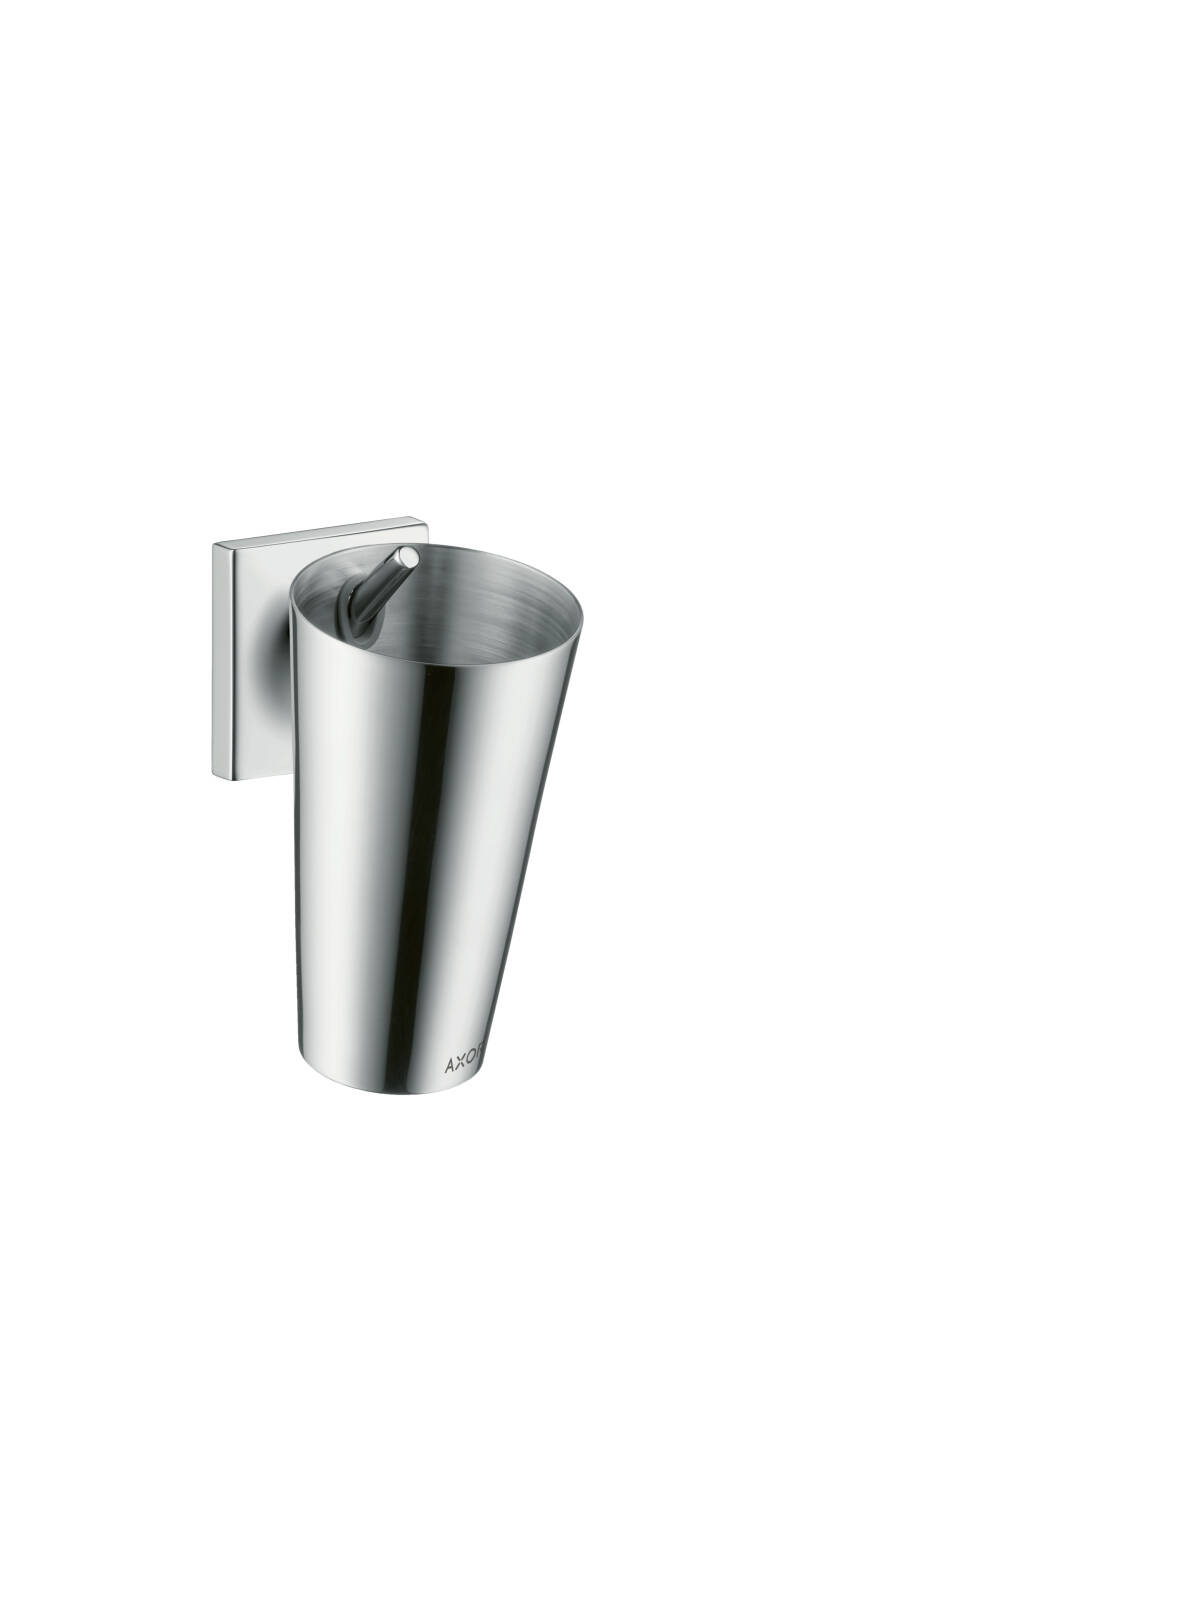 Toothbrush tumbler, Chrome, 42734000